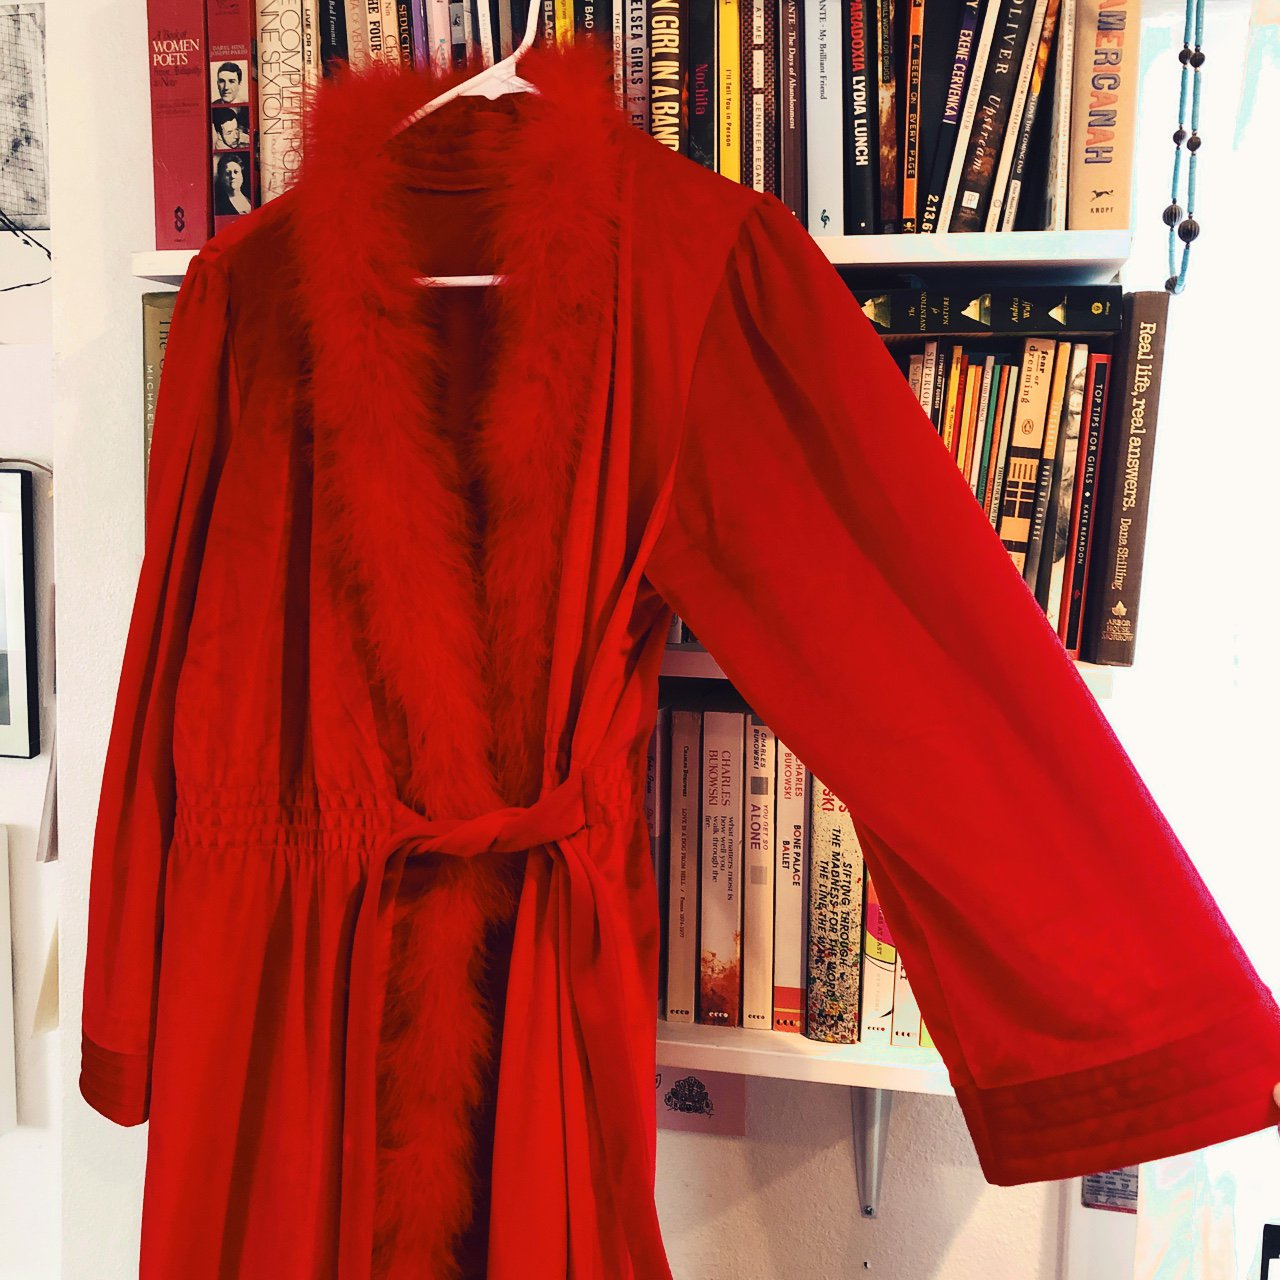 Most Amazing Vintage Red Robe Wow Wow Red Hot Velvet With Depop